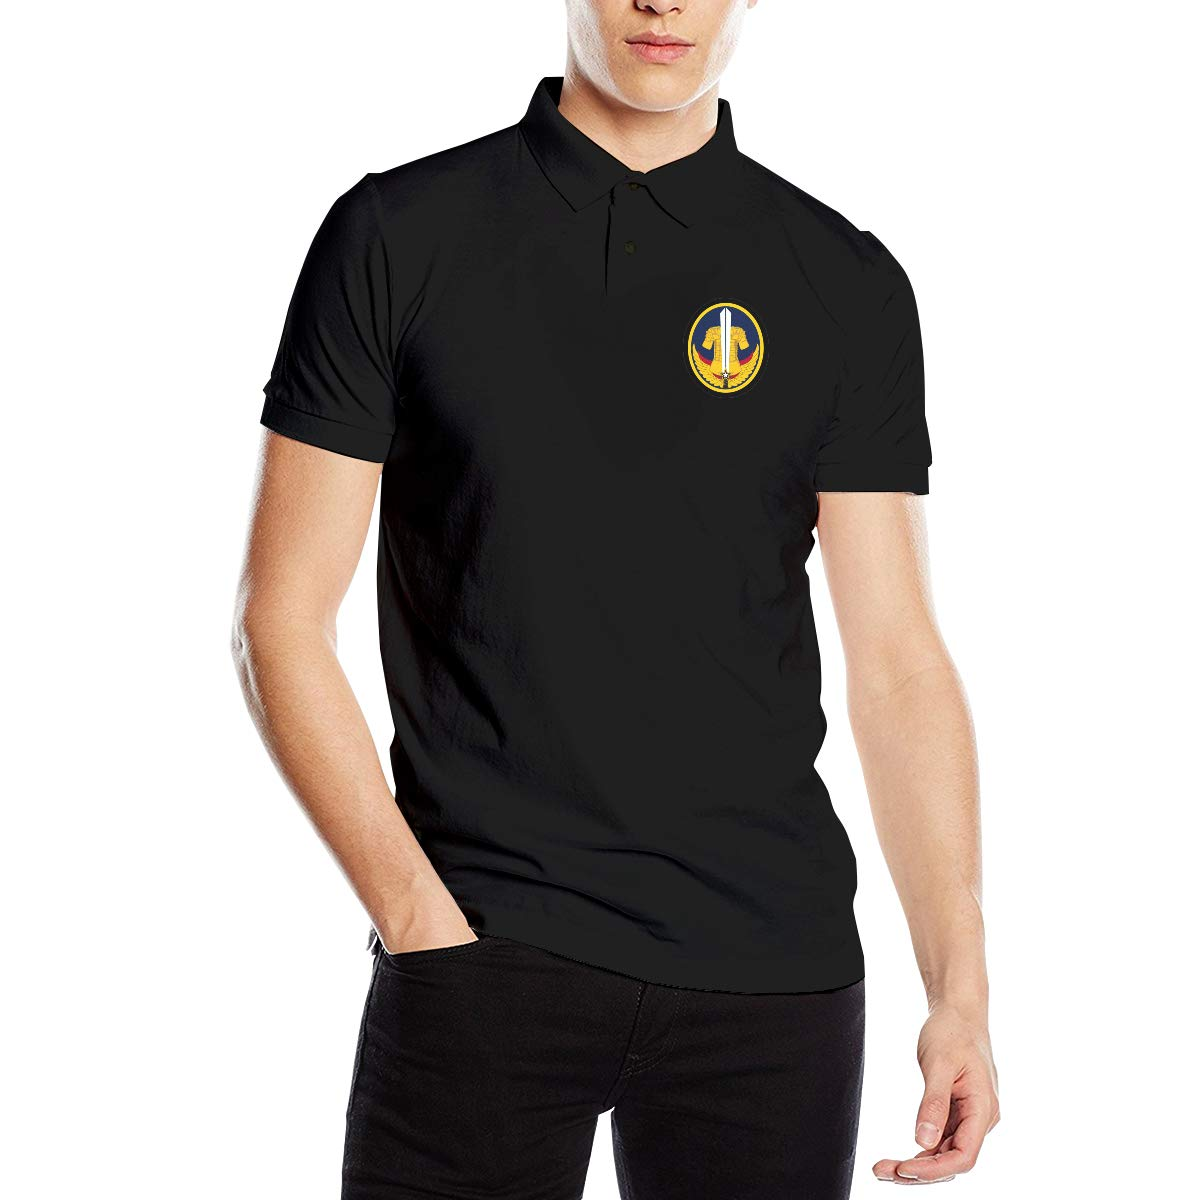 You Know And Good Army Reserve Careers Division Mens Regular-Fit Cotton Polo Shirt Short Sleeve